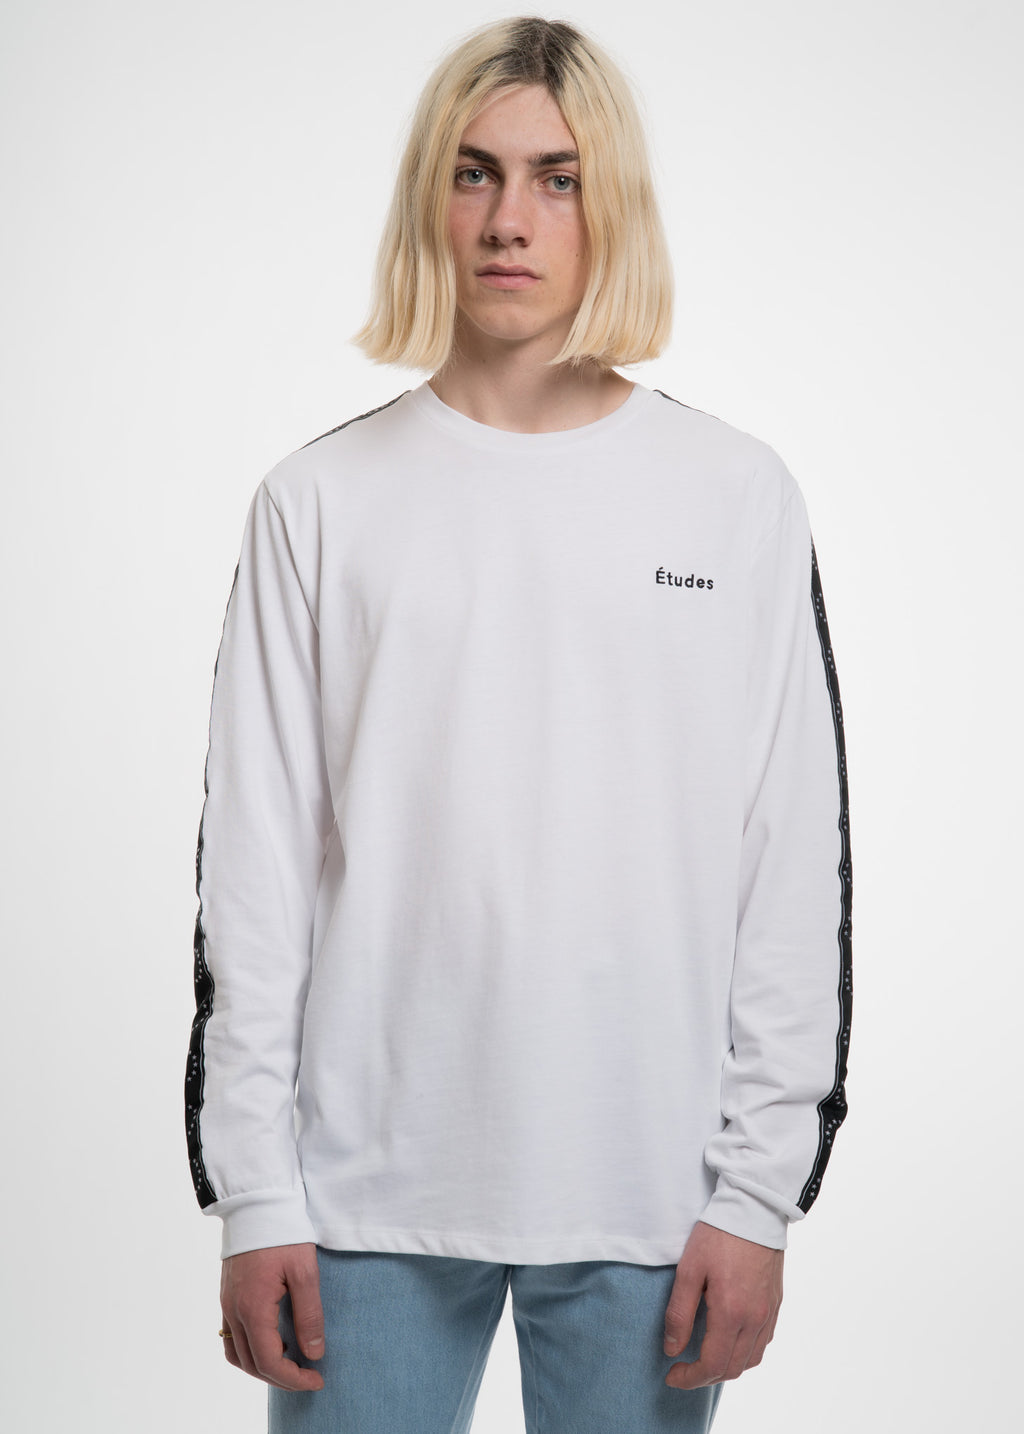 Etudes, White Page ML Team T-Shirt, 017 Shop